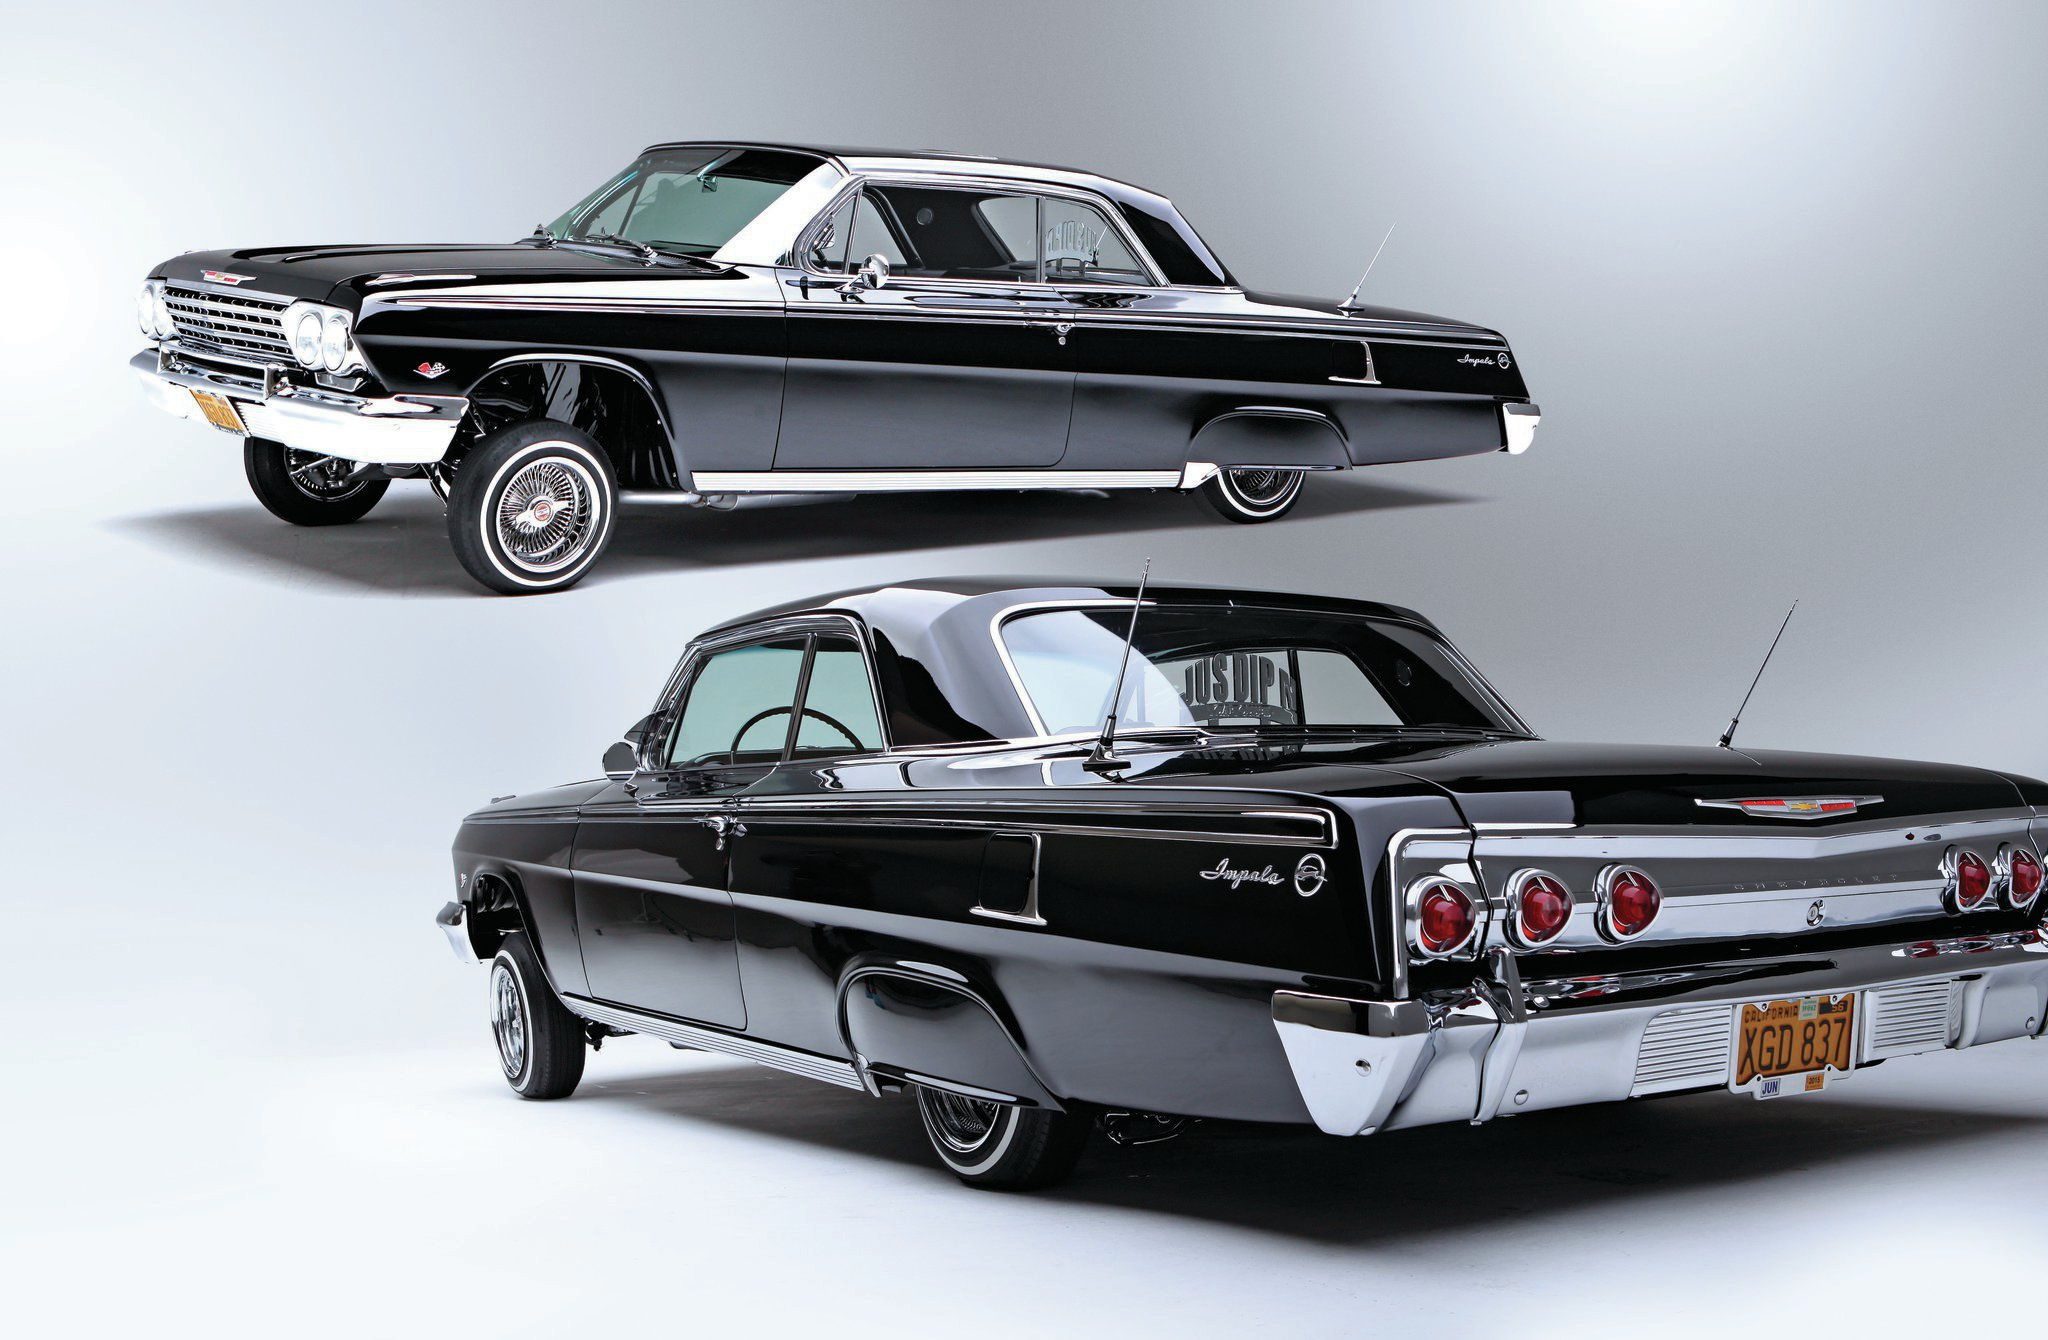 1962 Chevrolet Impala Black Diamond